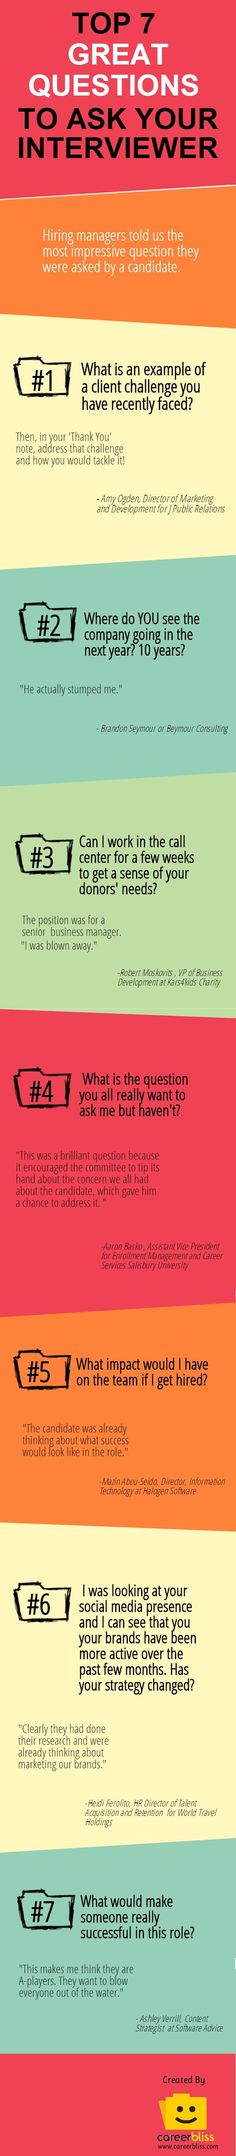 7 Great Questions to Ask in an #Interview   #Resources